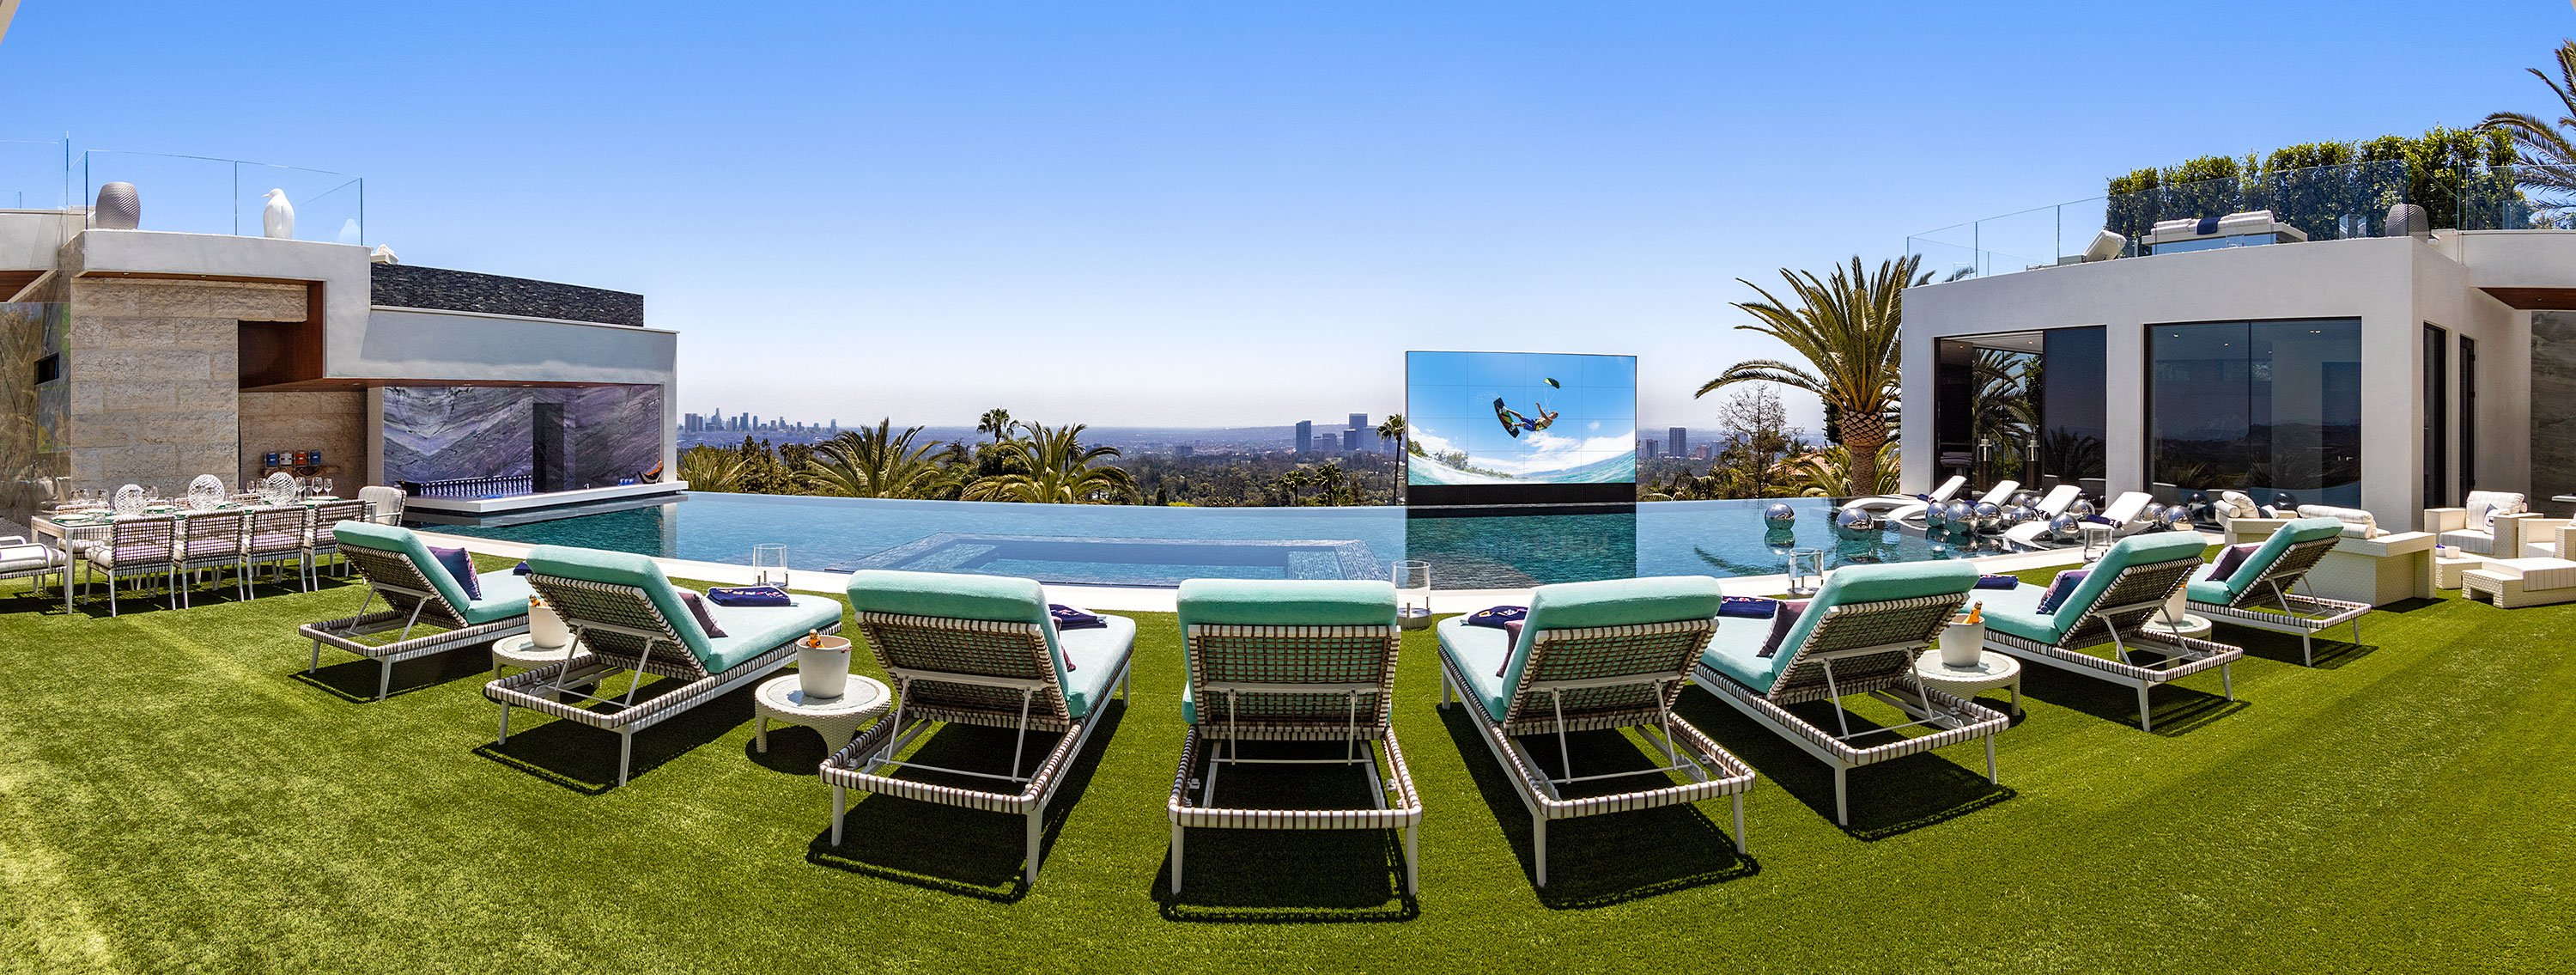 America's Most Expensive Home For sale -Pool_Panorama